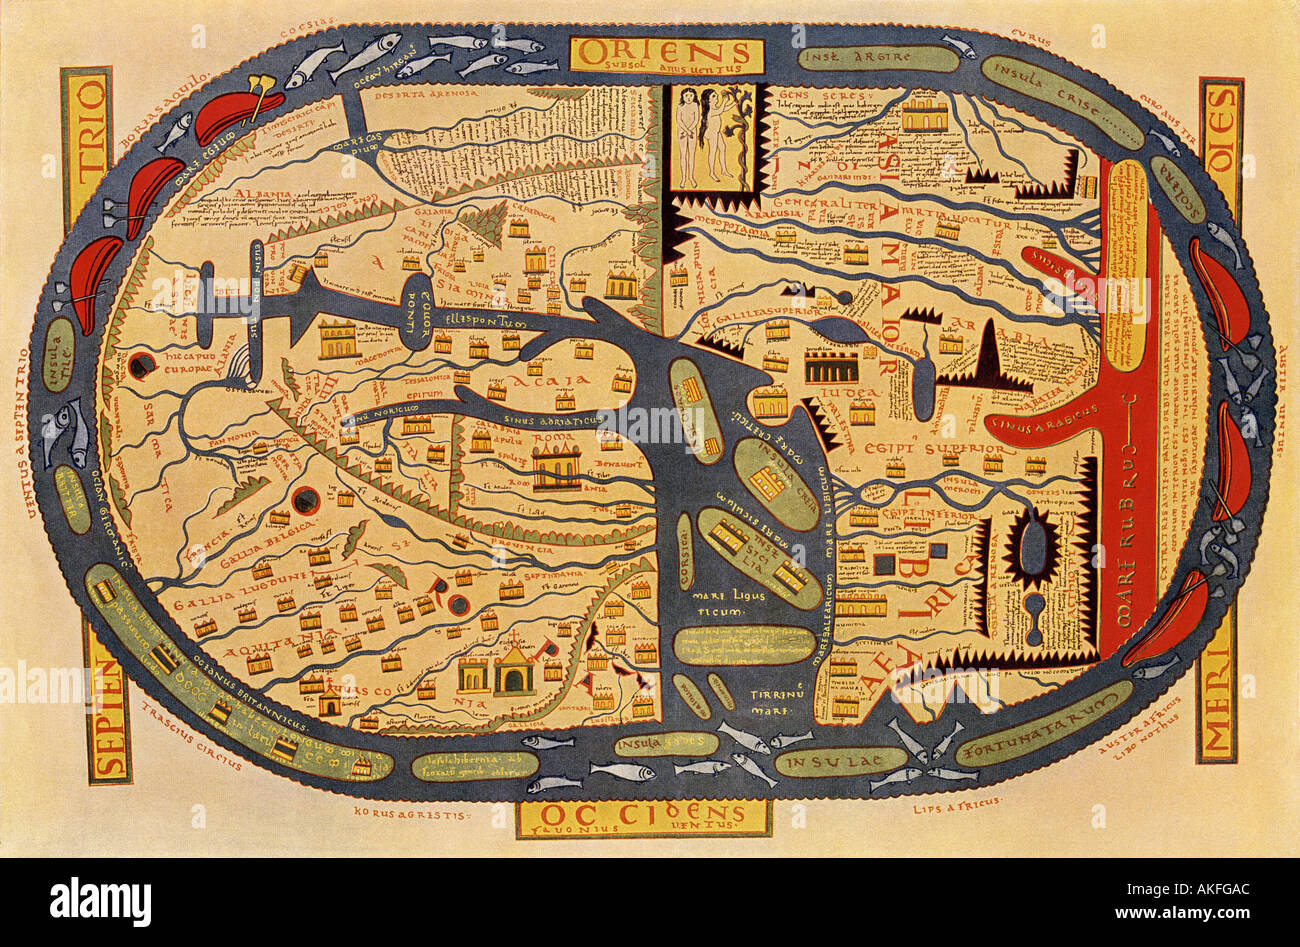 World map of the flat earth printed by beatus rhenanus bildaus world map of the flat earth printed by beatus rhenanus bildaus rheinau early 1500s north is left mediterranean sea middle gumiabroncs Choice Image